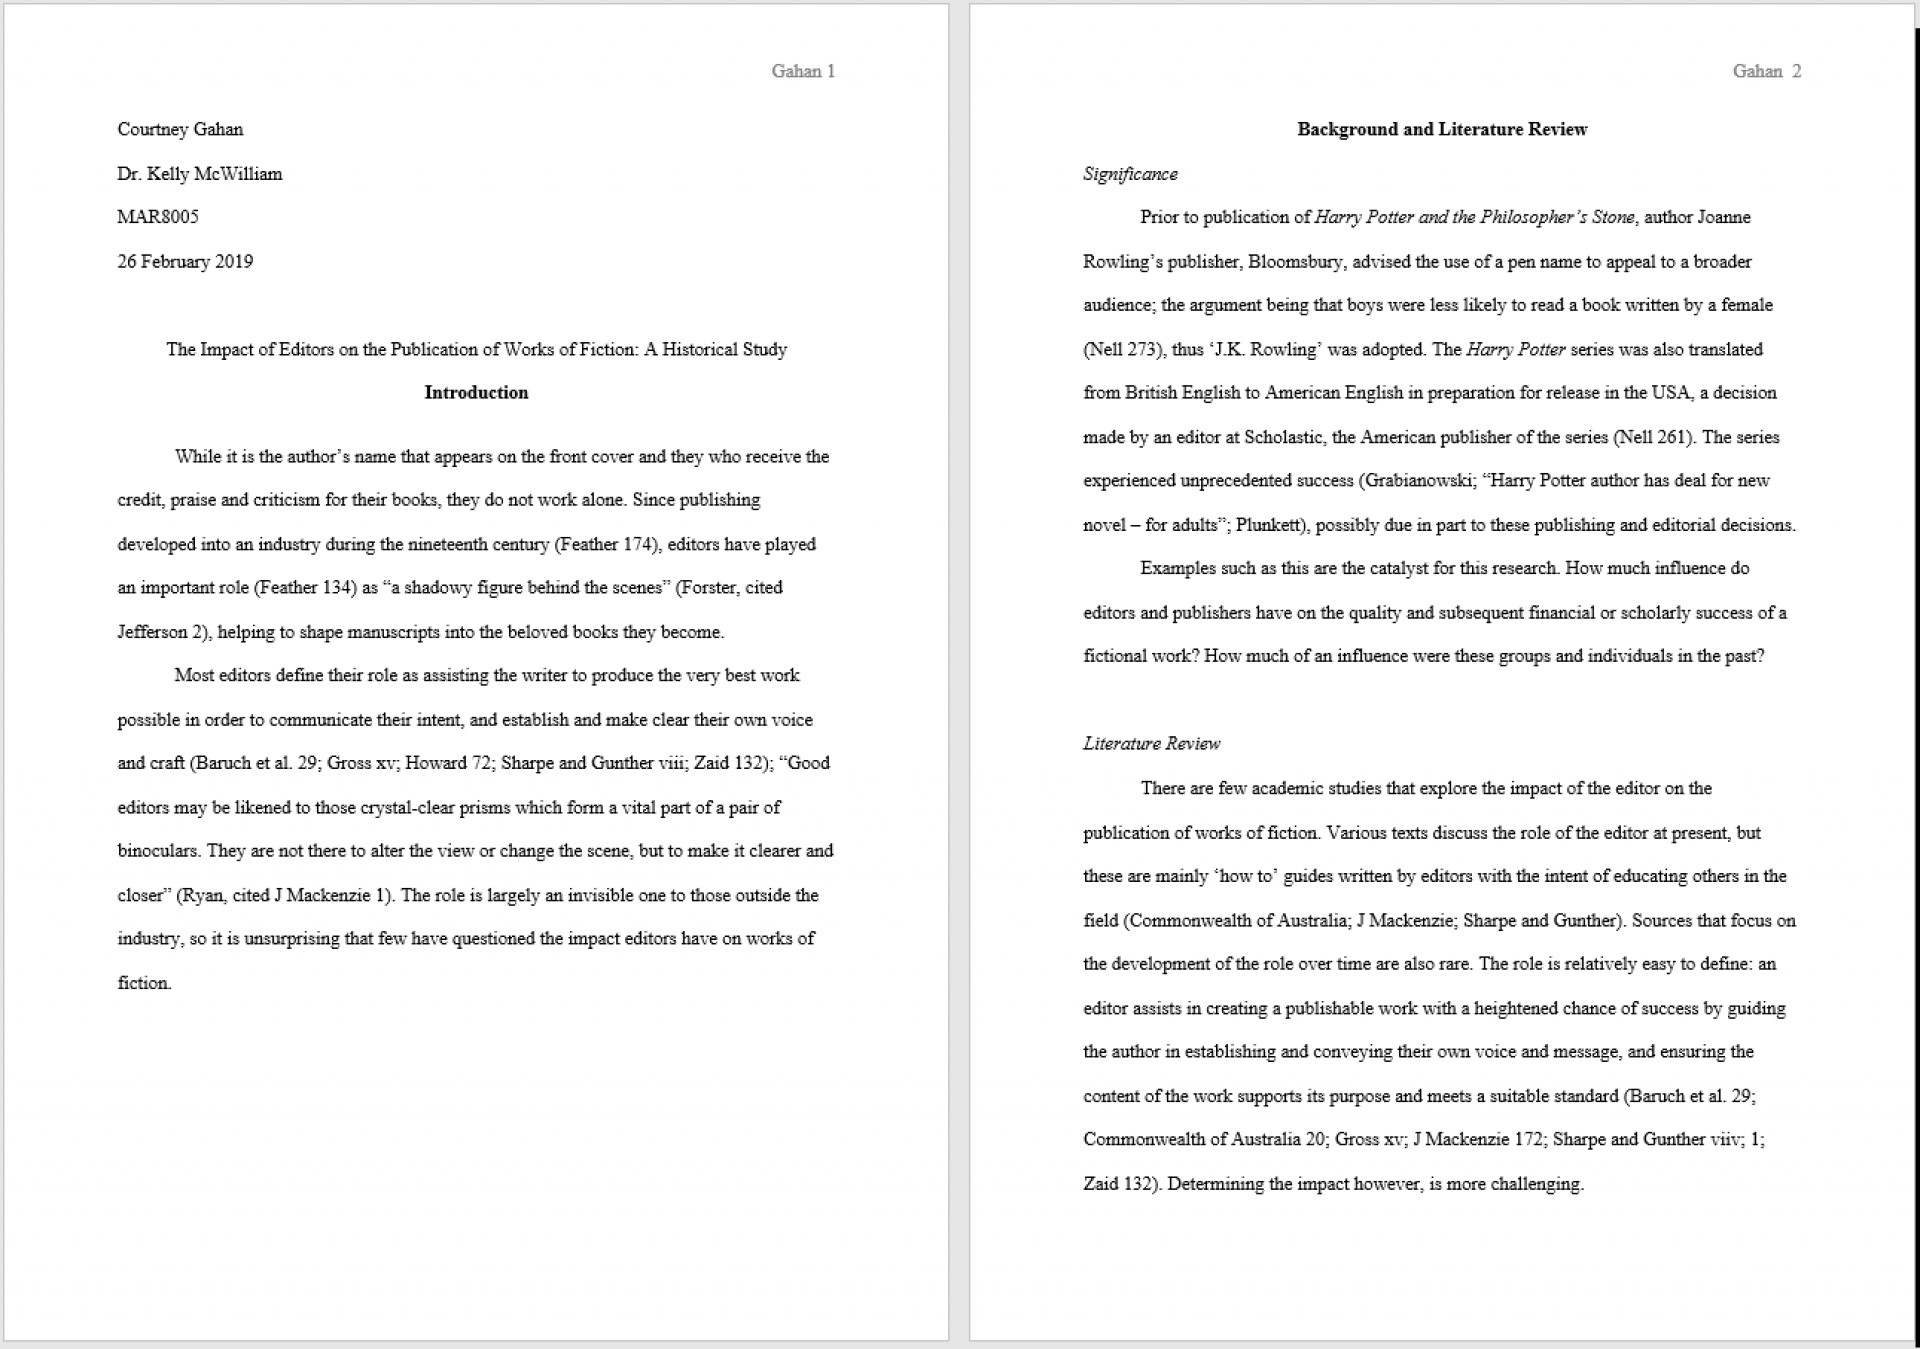 017 Research Paper Mla Sample Style Impressive Template 1920